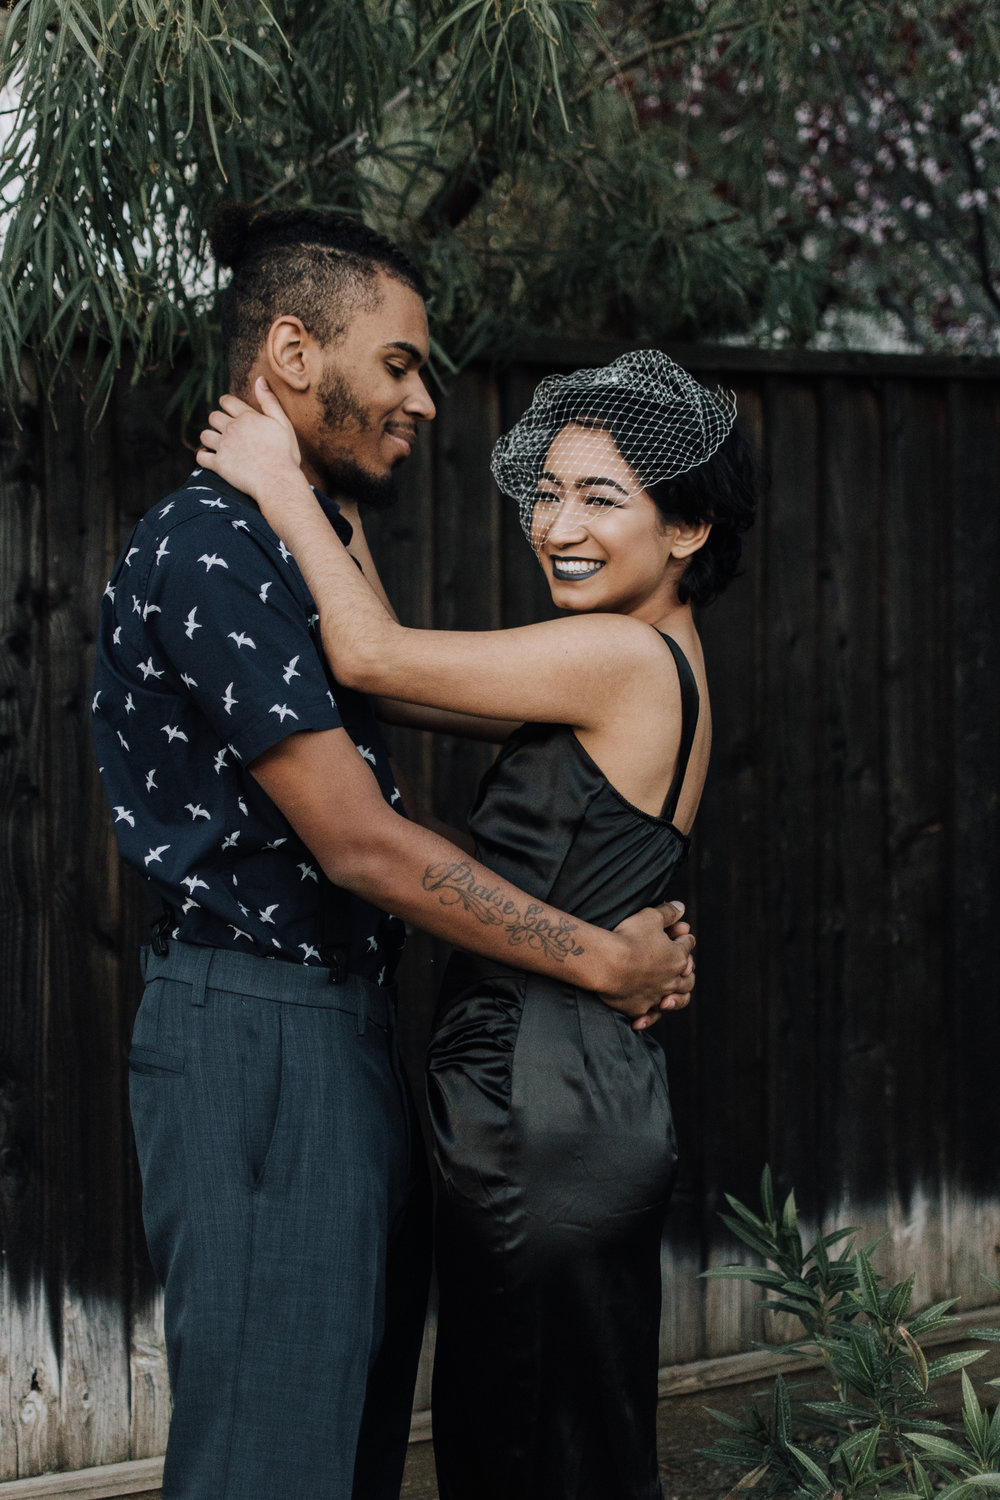 Ska Punk Psychobilly Wedding Elopement Inspiration in the San Francisco Bay Area by Helen Feliciano-Bailey